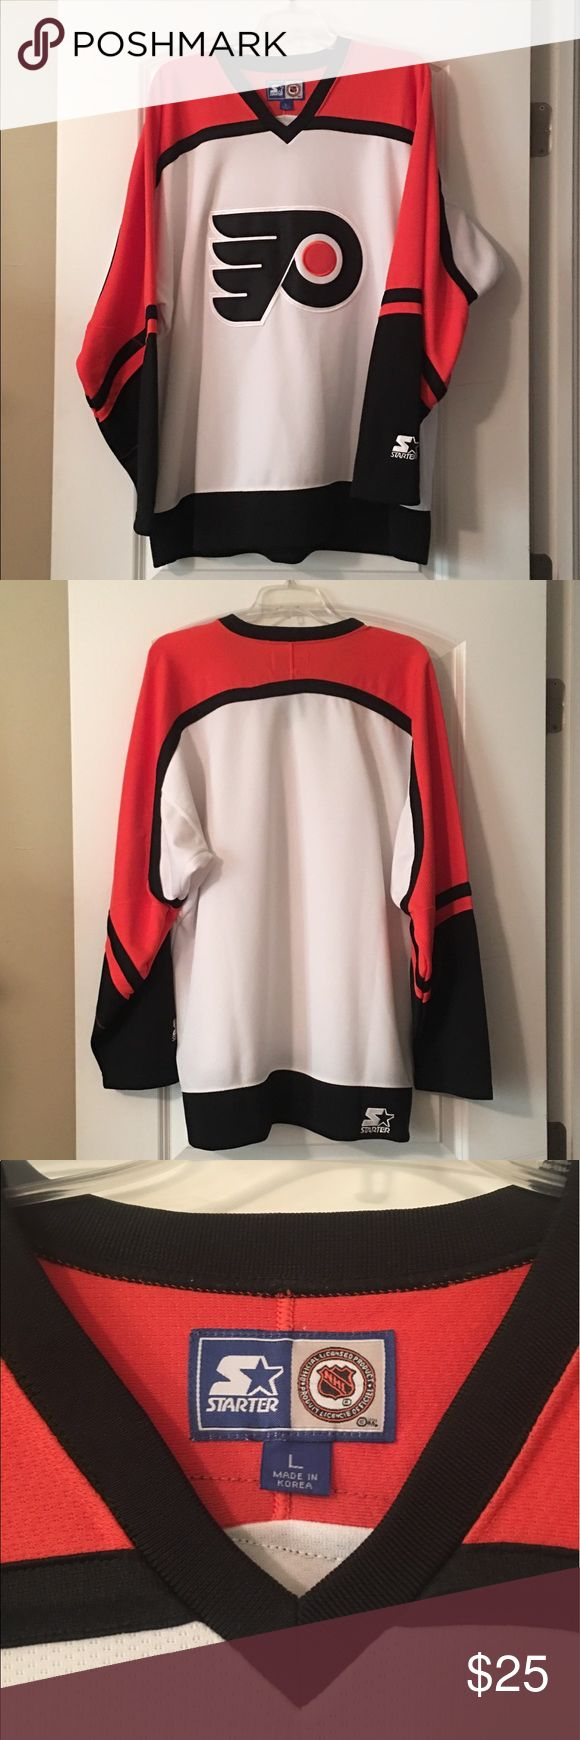 """Official NHL Philadelphia Flyers Jersey Official NHL Flyers jersey, excellent condition, only worn a few times. 26""""x31"""" Starter Other"""